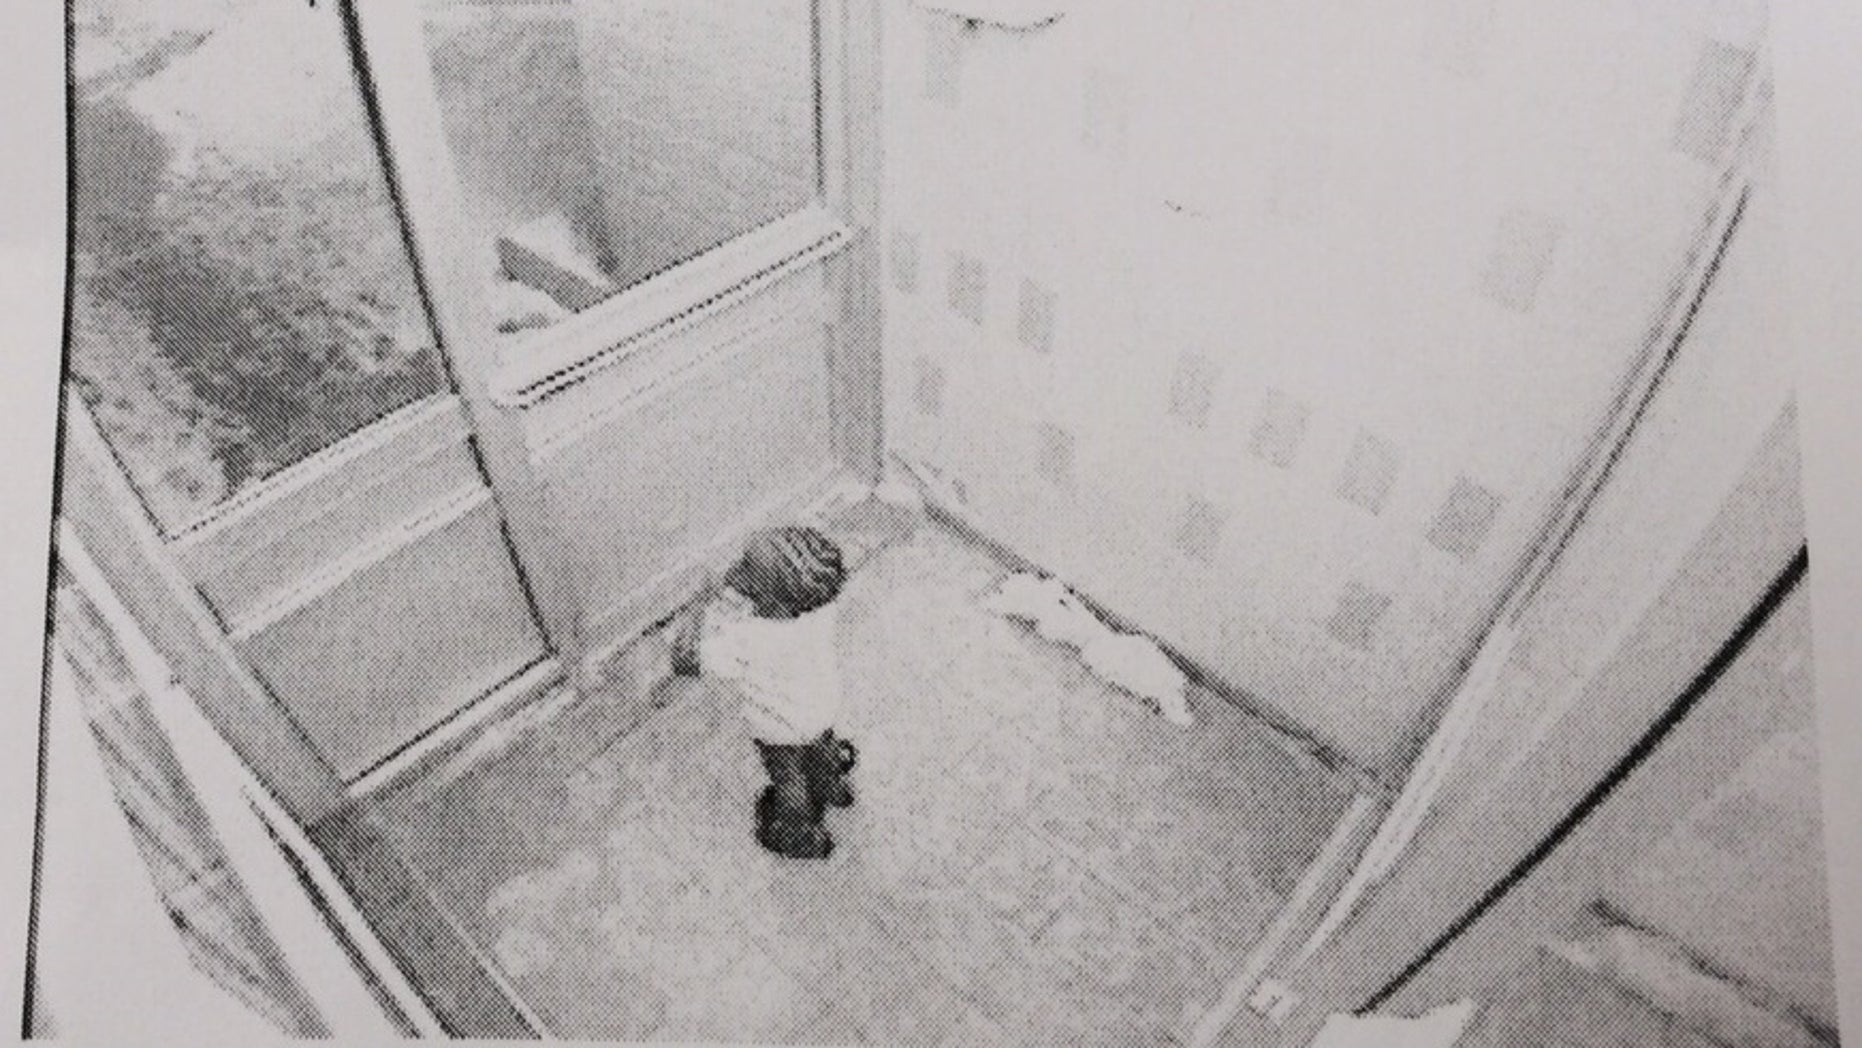 In this frame grab from security camera video provided by the Toronto Police Service via The Canadian Press, 3-year-old Elijah stands in an apartment building lobby, early Thursday, Feb. 19, 2015, in Toronto. Elijah was found dead later Thursday morning after wandering away from the apartment building into bitterly cold weather. (AP Photo/Toronto Police Service via The Canadian Press)